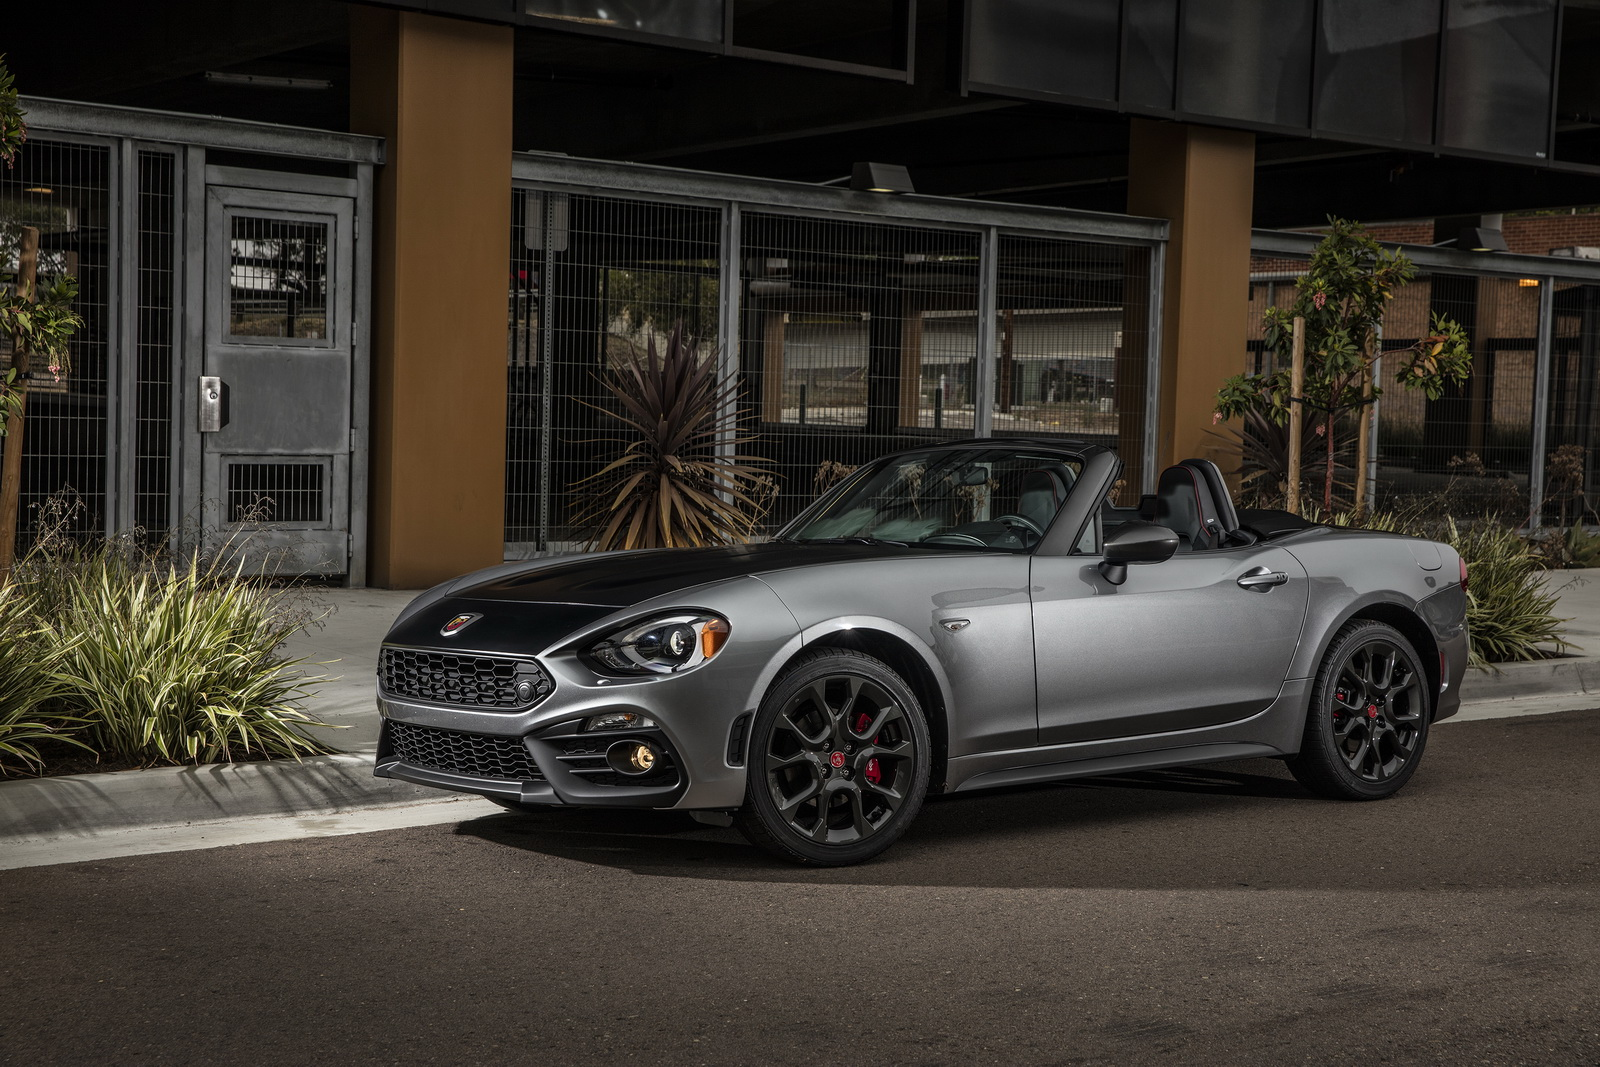 usa s 2017 fiat abarth 124 spider analyzed in 100 photos. Black Bedroom Furniture Sets. Home Design Ideas